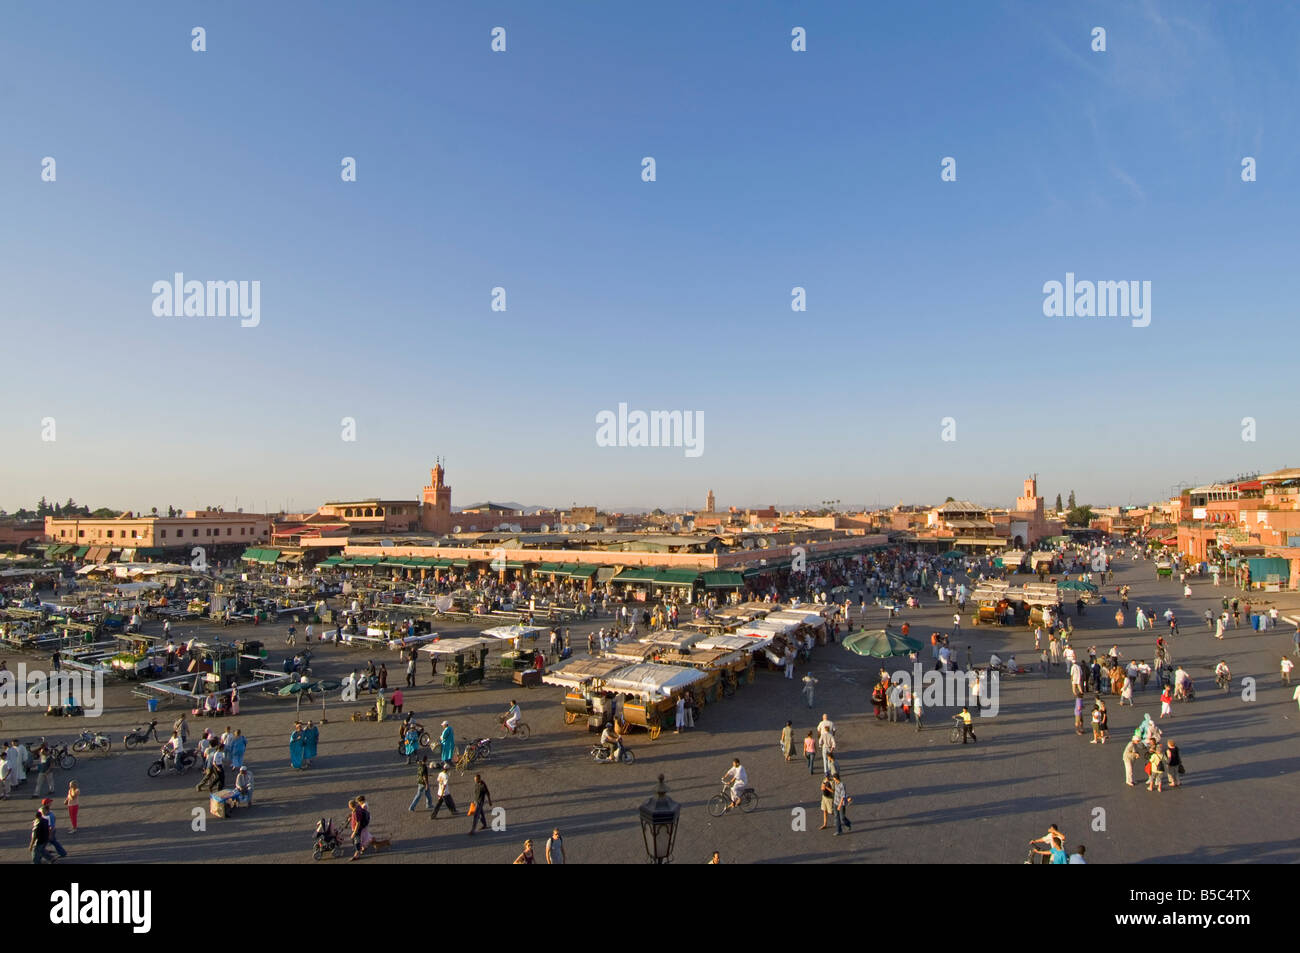 A wide aerial view of the Djemaa El Fna in Marrakesh as it starts to fill up in the late afternoon sun. - Stock Image